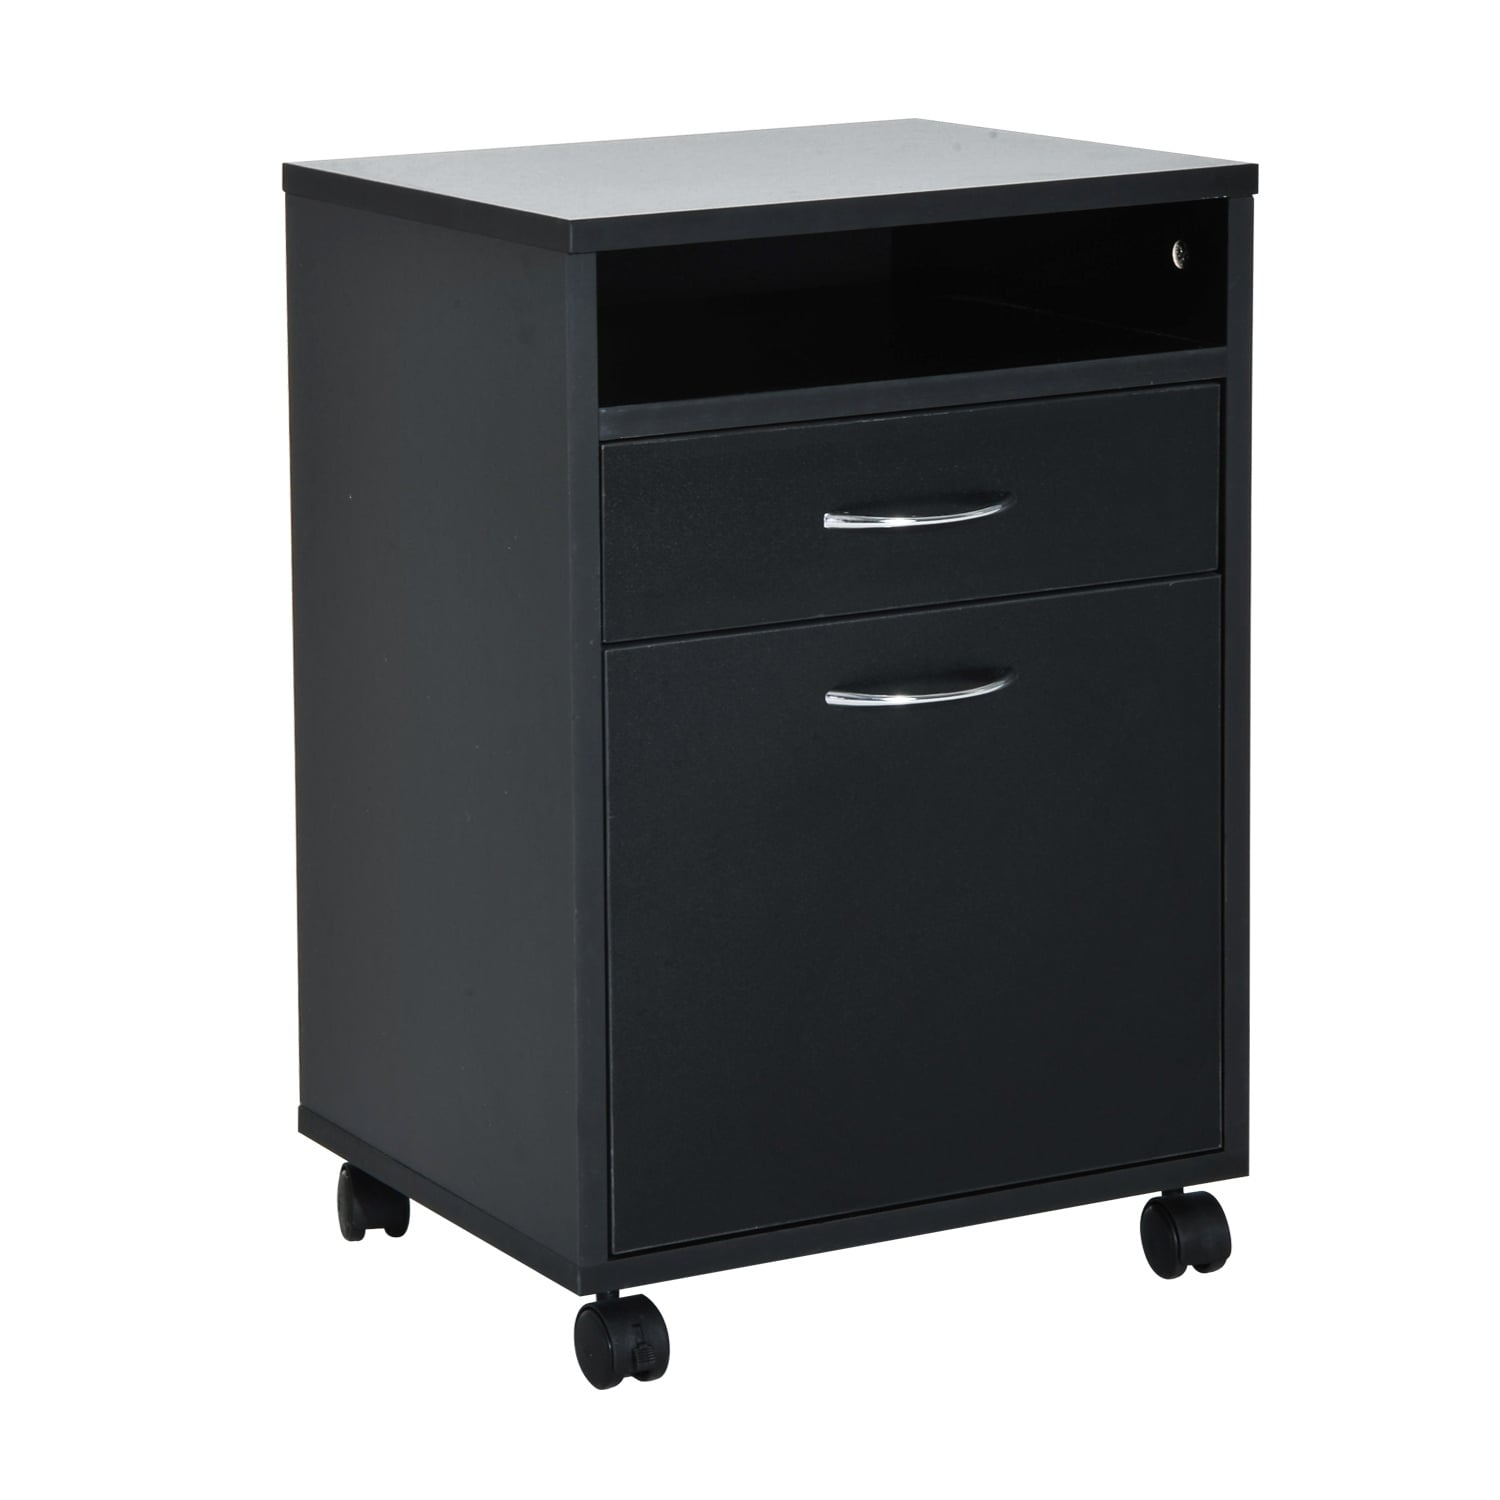 homcom 24 mobile printer stand office storage cabinet on wheels black ebay. Black Bedroom Furniture Sets. Home Design Ideas